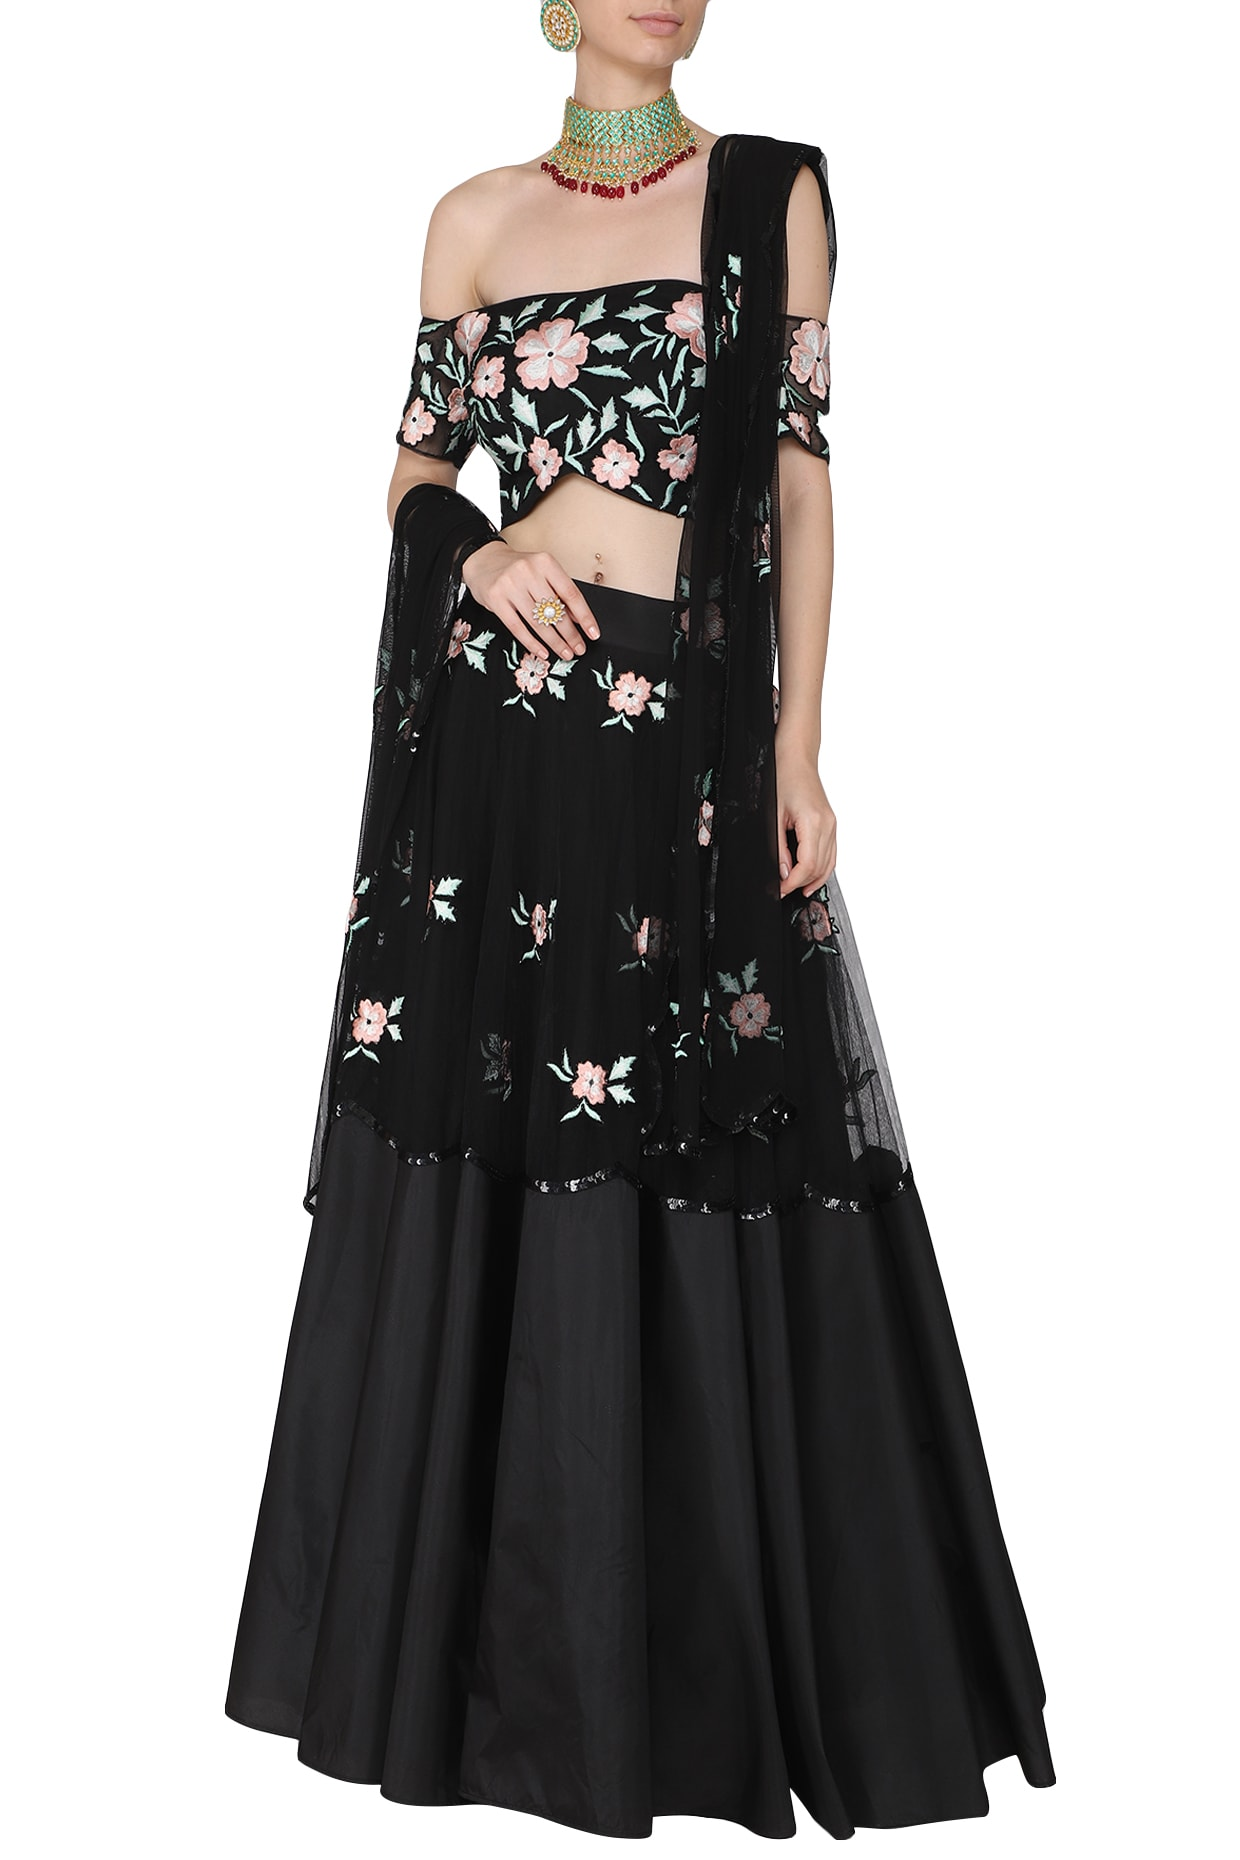 4559581a7f67e2 Black and peach embroidered off shoulder blouse with lehenga set available  only at Pernia's Pop Up Shop.